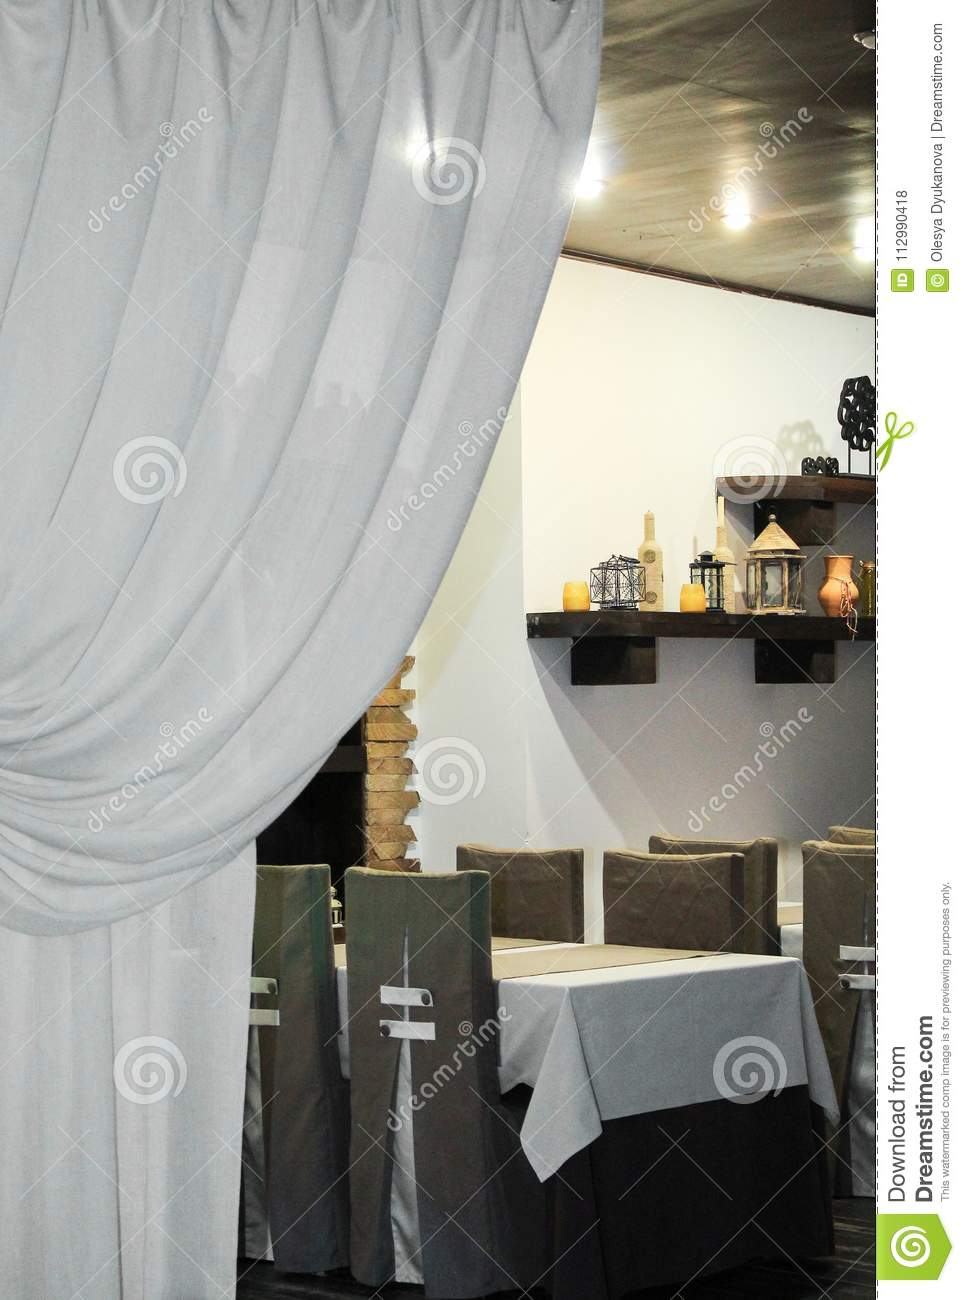 Interior of cafe is ready for the arrival of visitors